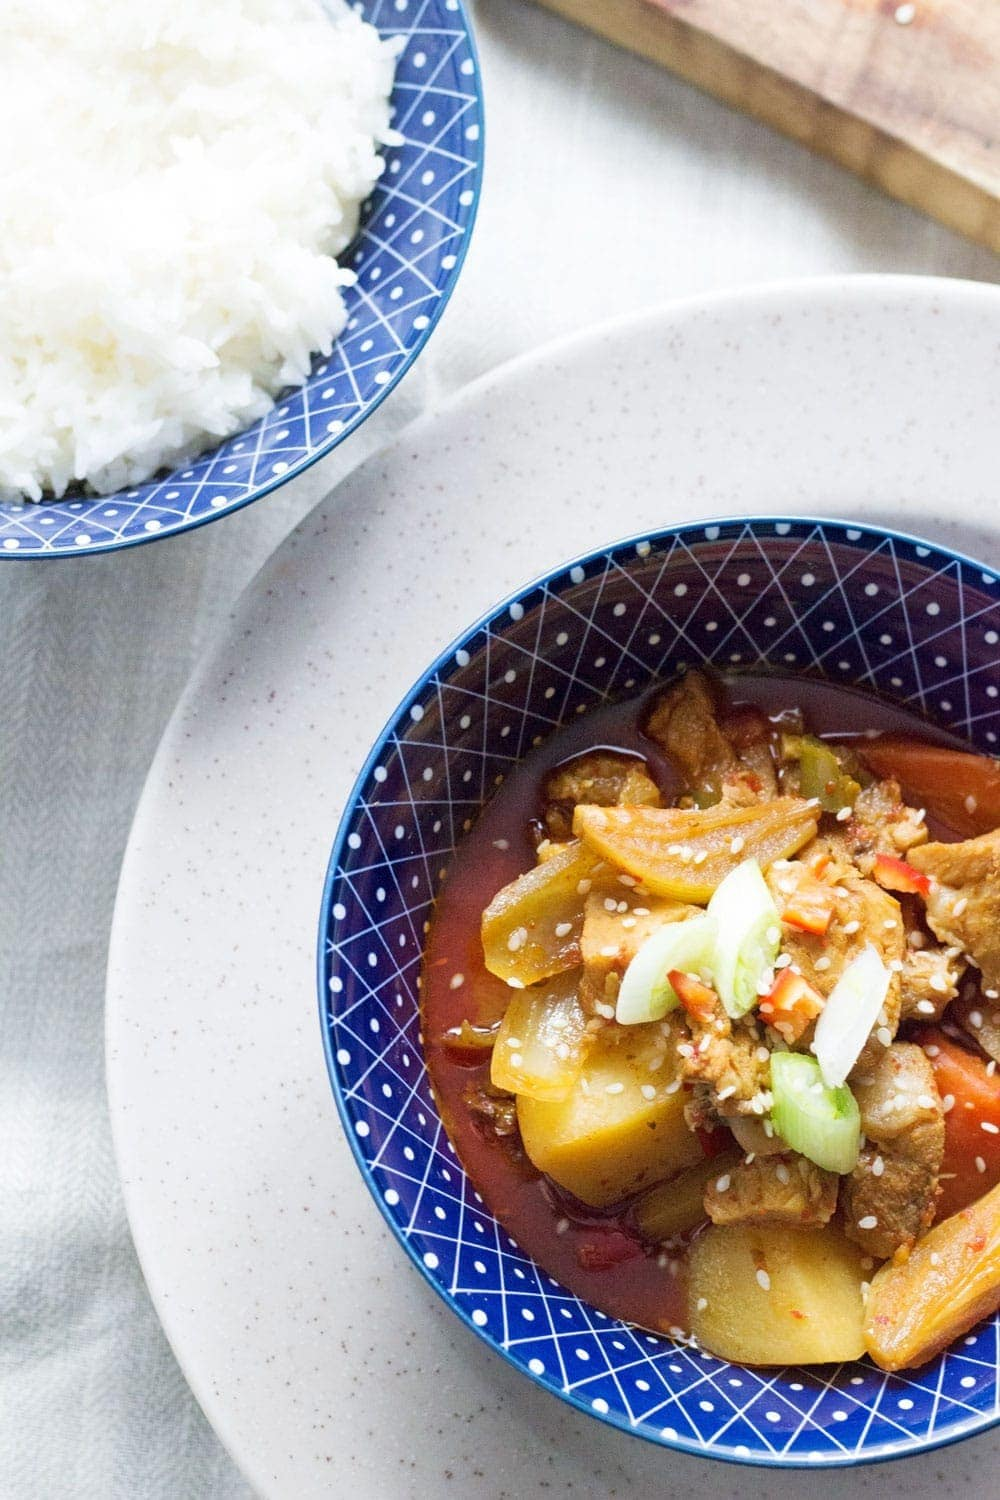 This Korean pork & potato stew is full of warm, spicy flavour. Slow cooking it makes the meat fall apart. It's the perfect winter warmer.